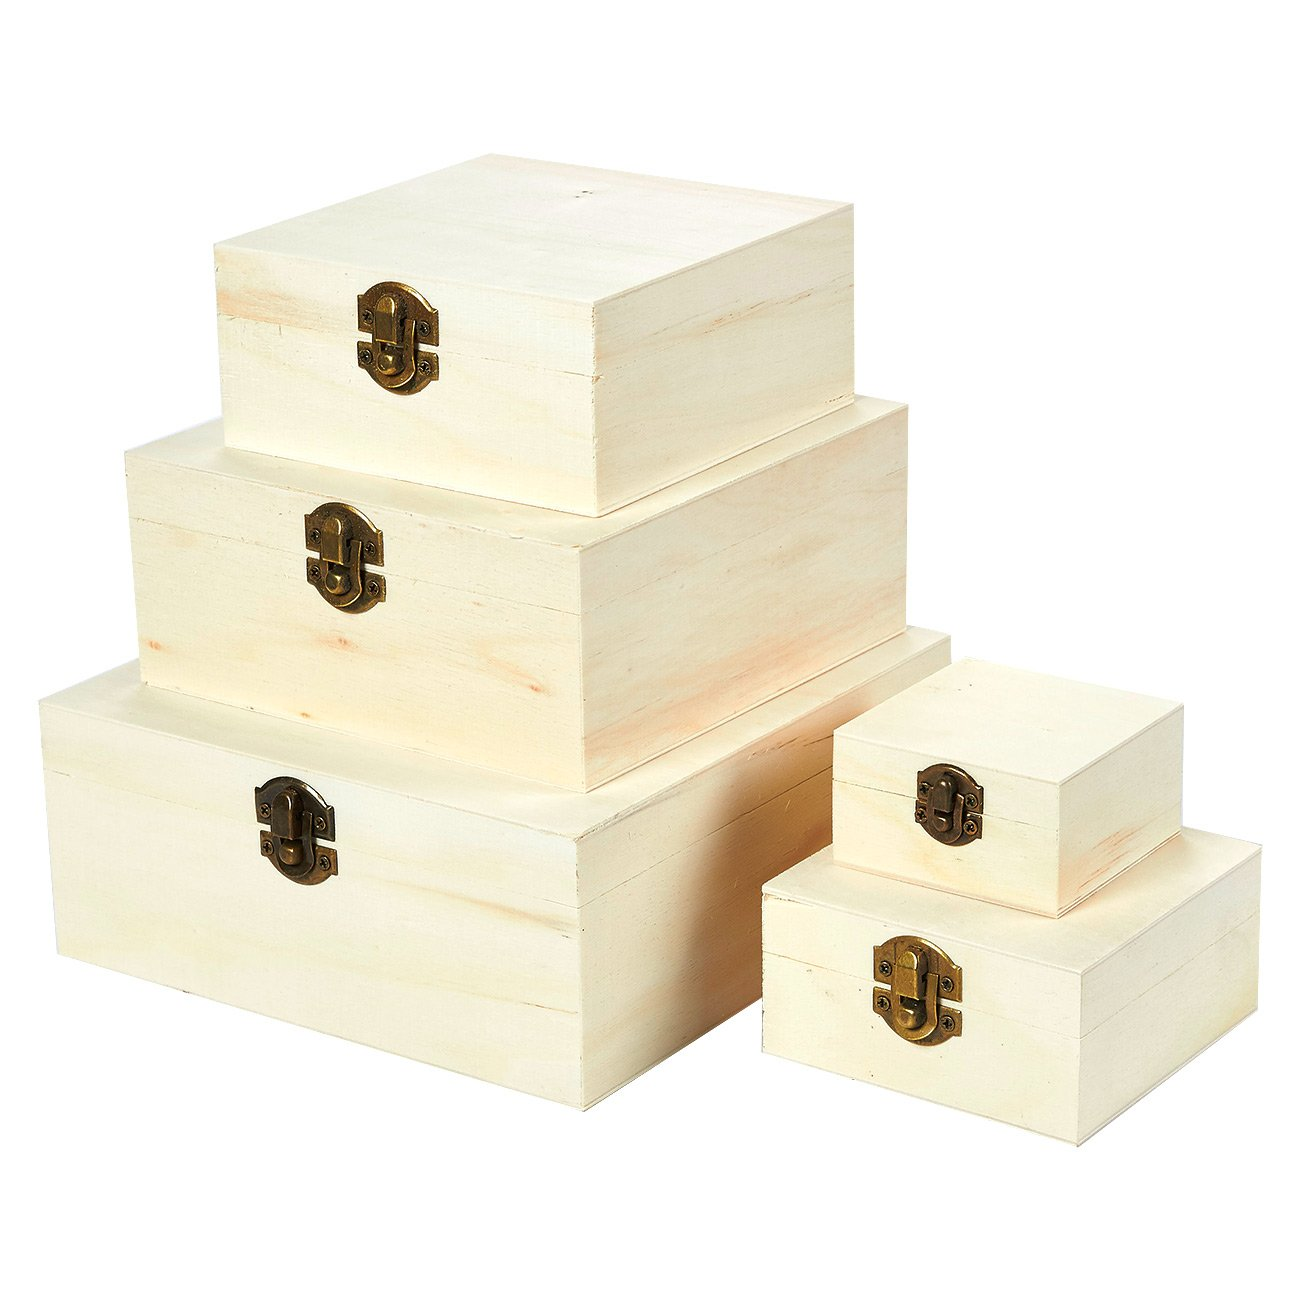 Juvale Wooden Boxes - 5-Piece Hinged-Lid Nesting Boxes Arts, Crafts, Hobbies Home Storage, Unfinished Wood, Natural Wood Color